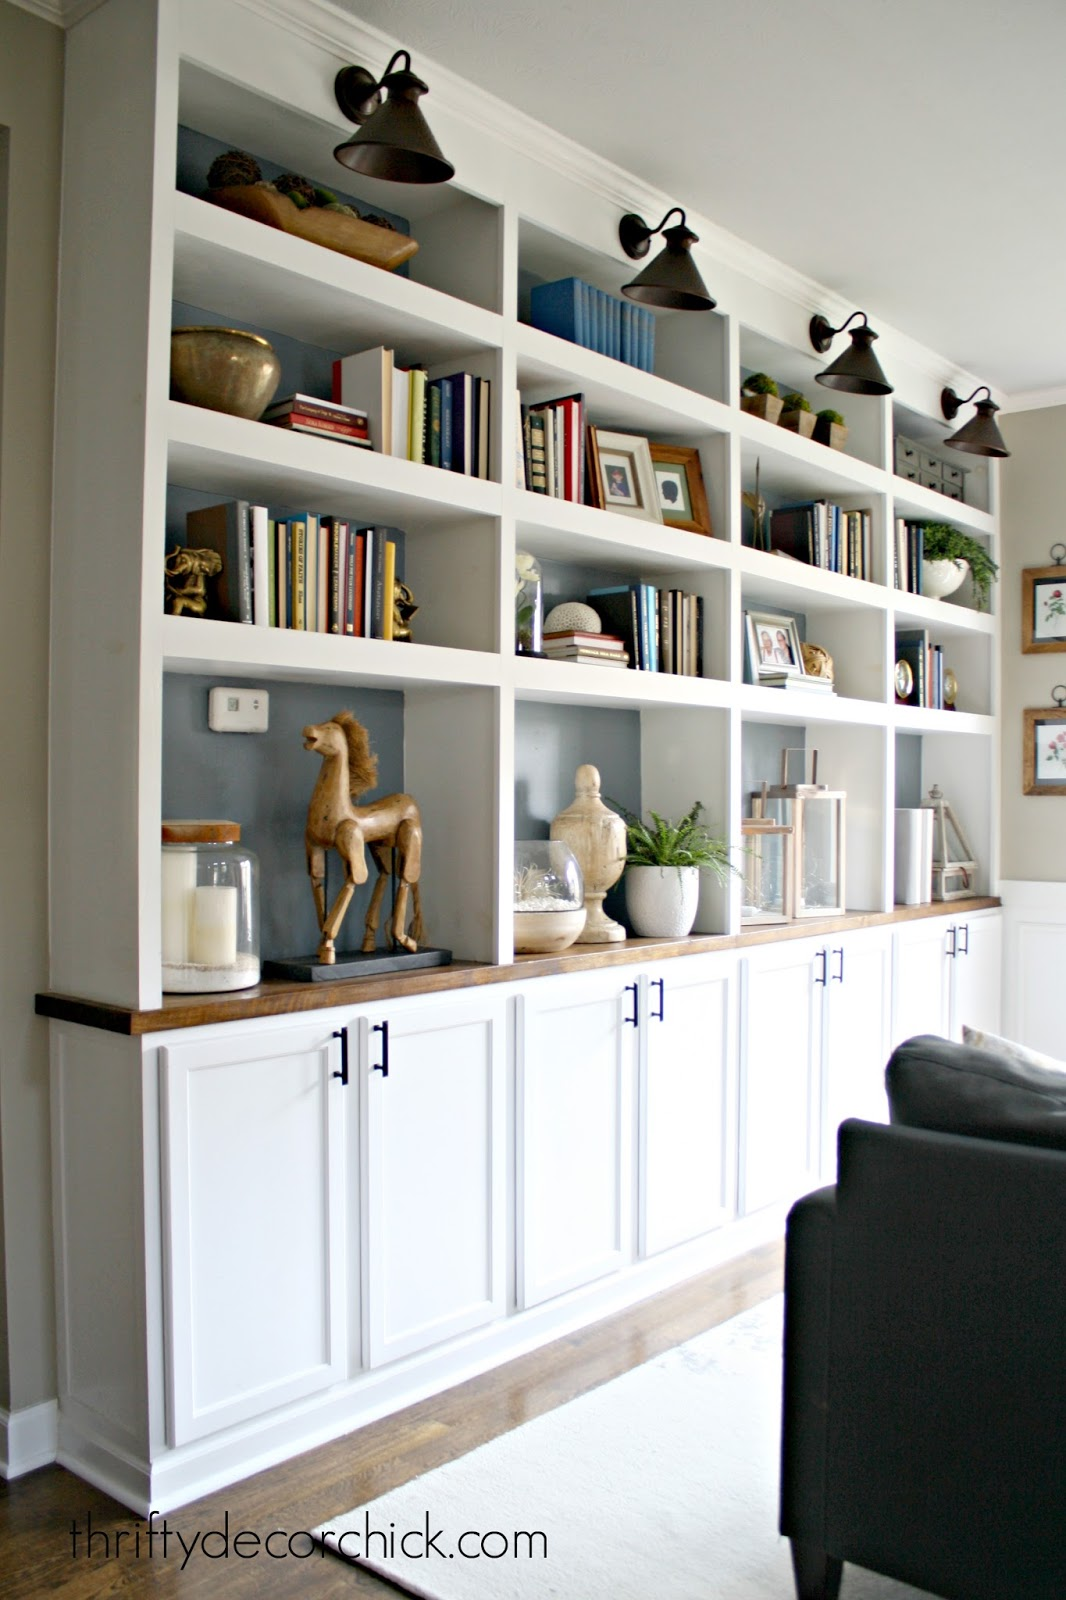 DIY built ins using cabinets